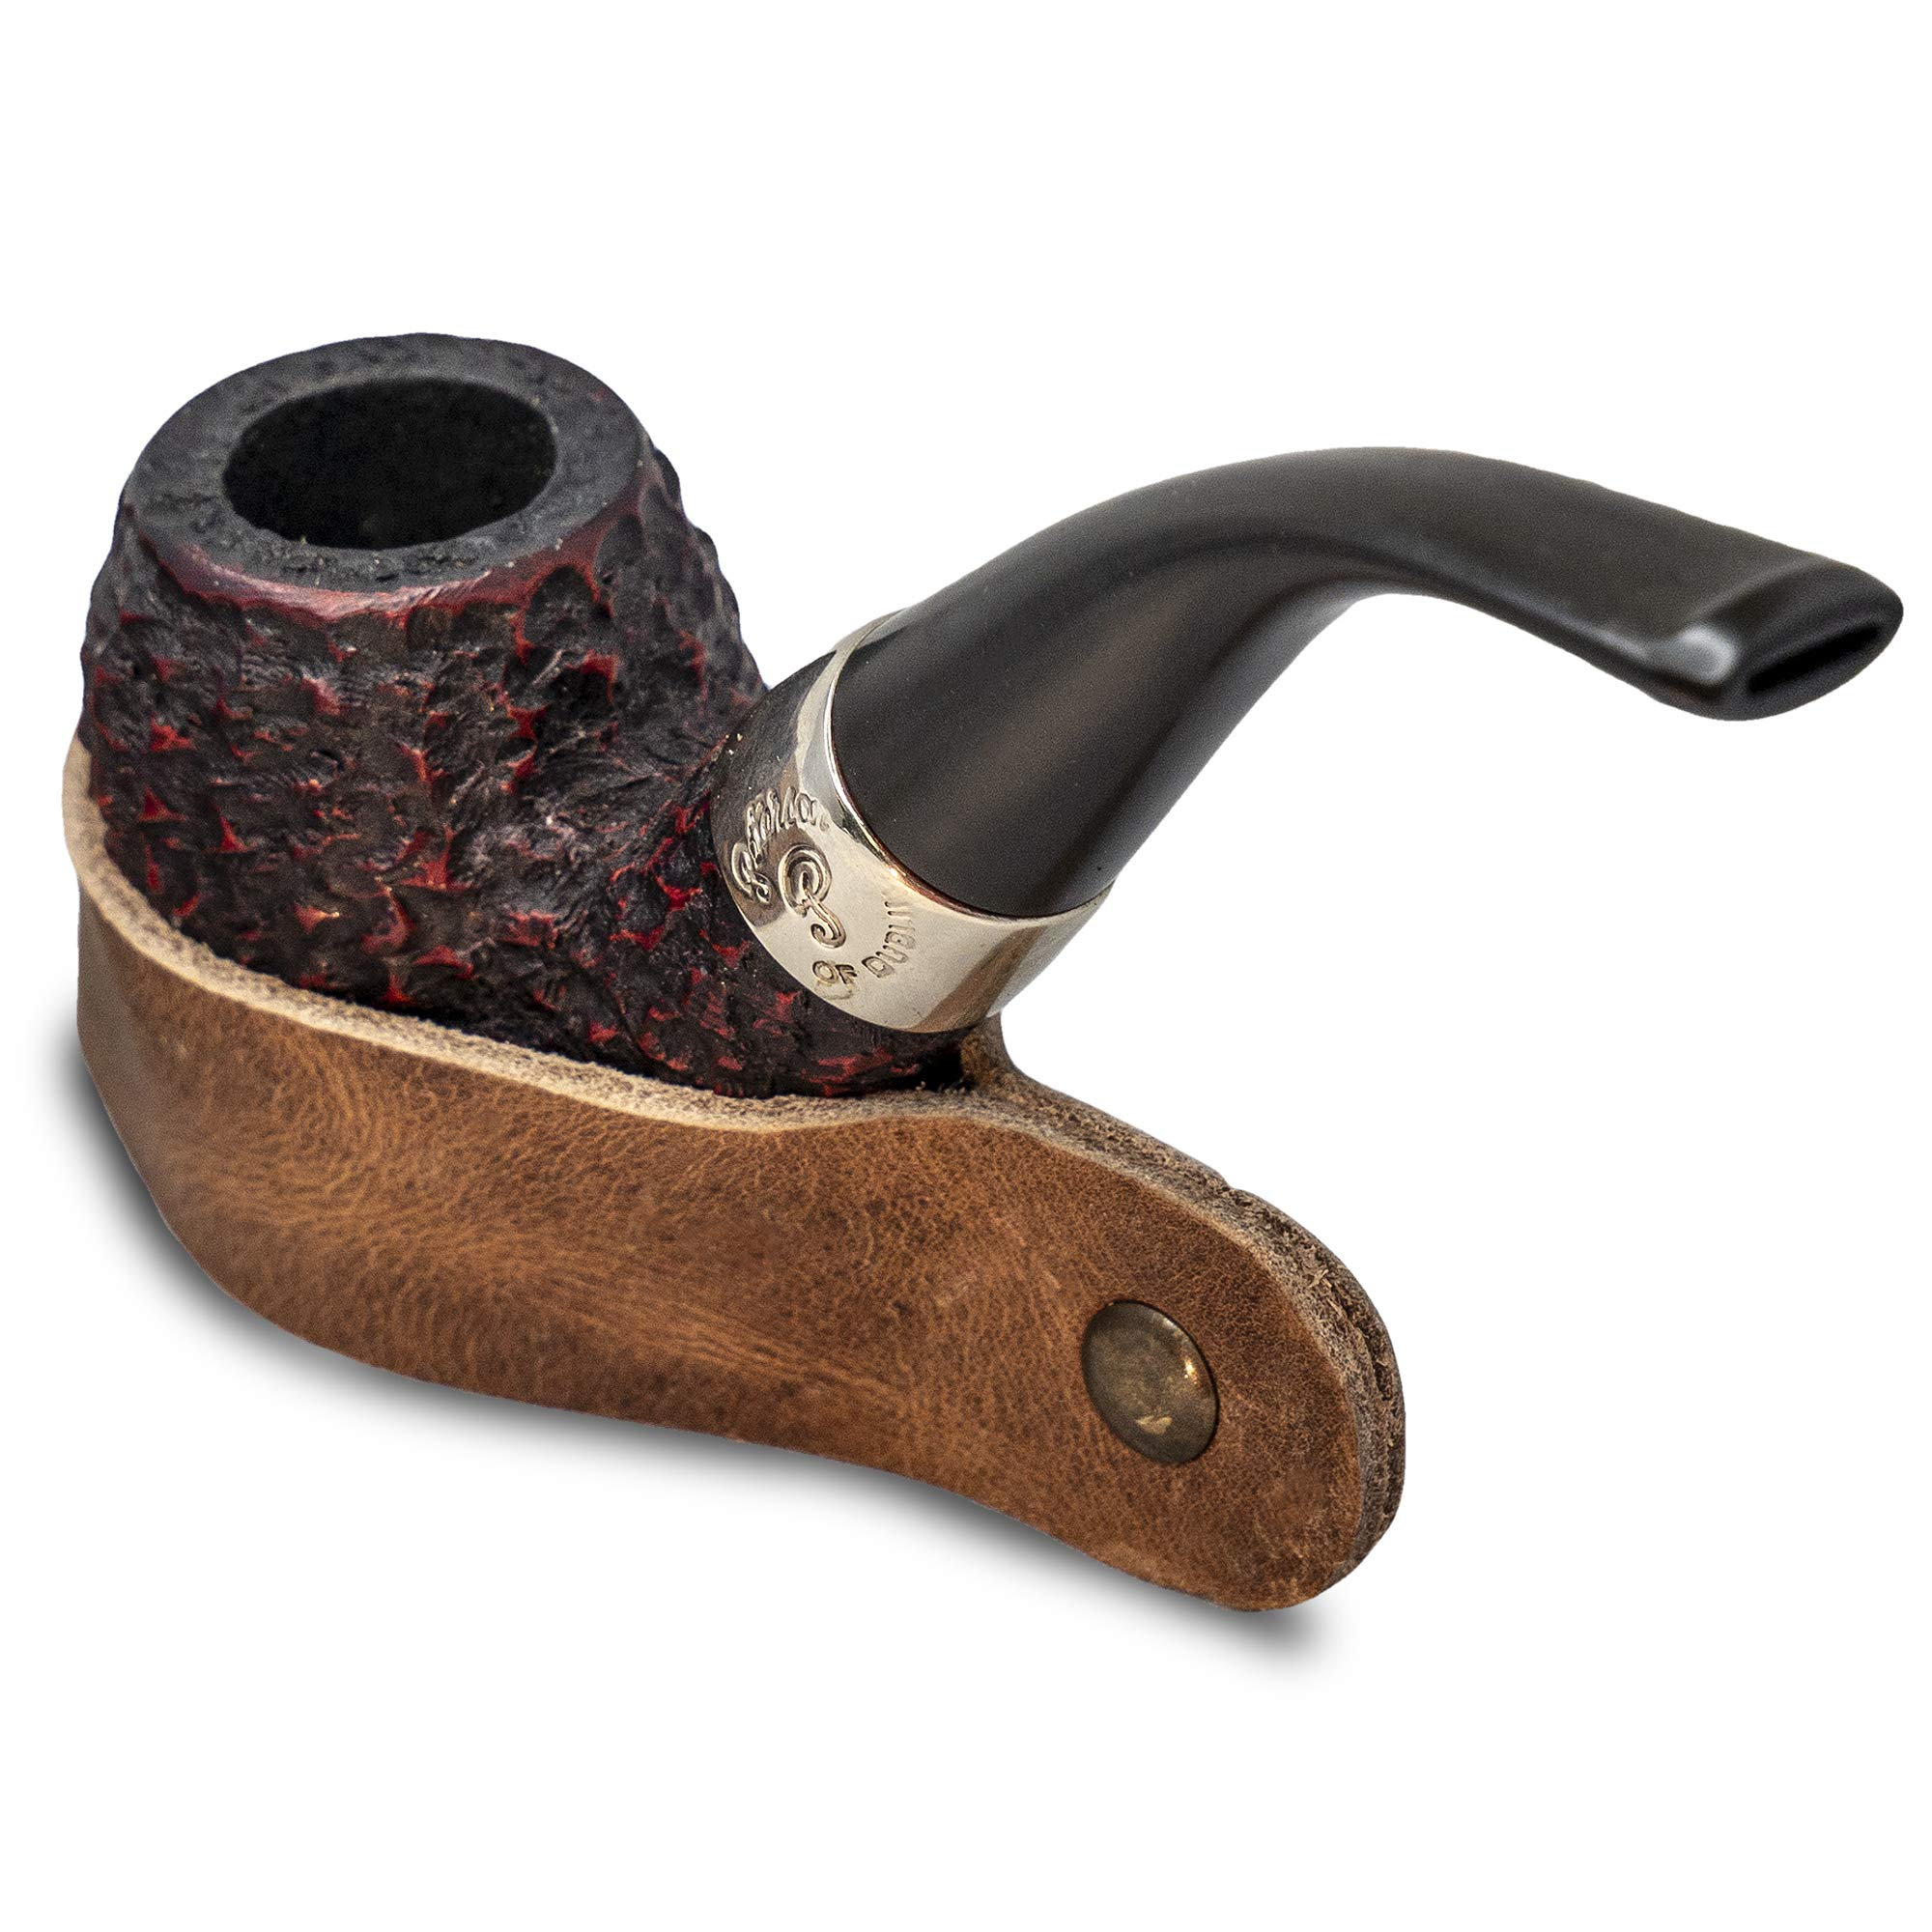 Leather Tobacco Pipe Stand - for Smoking Pipes Handmade Fair Wage in Central America by BRIAR AND OAK WWW.BRIARANDOAK.COM